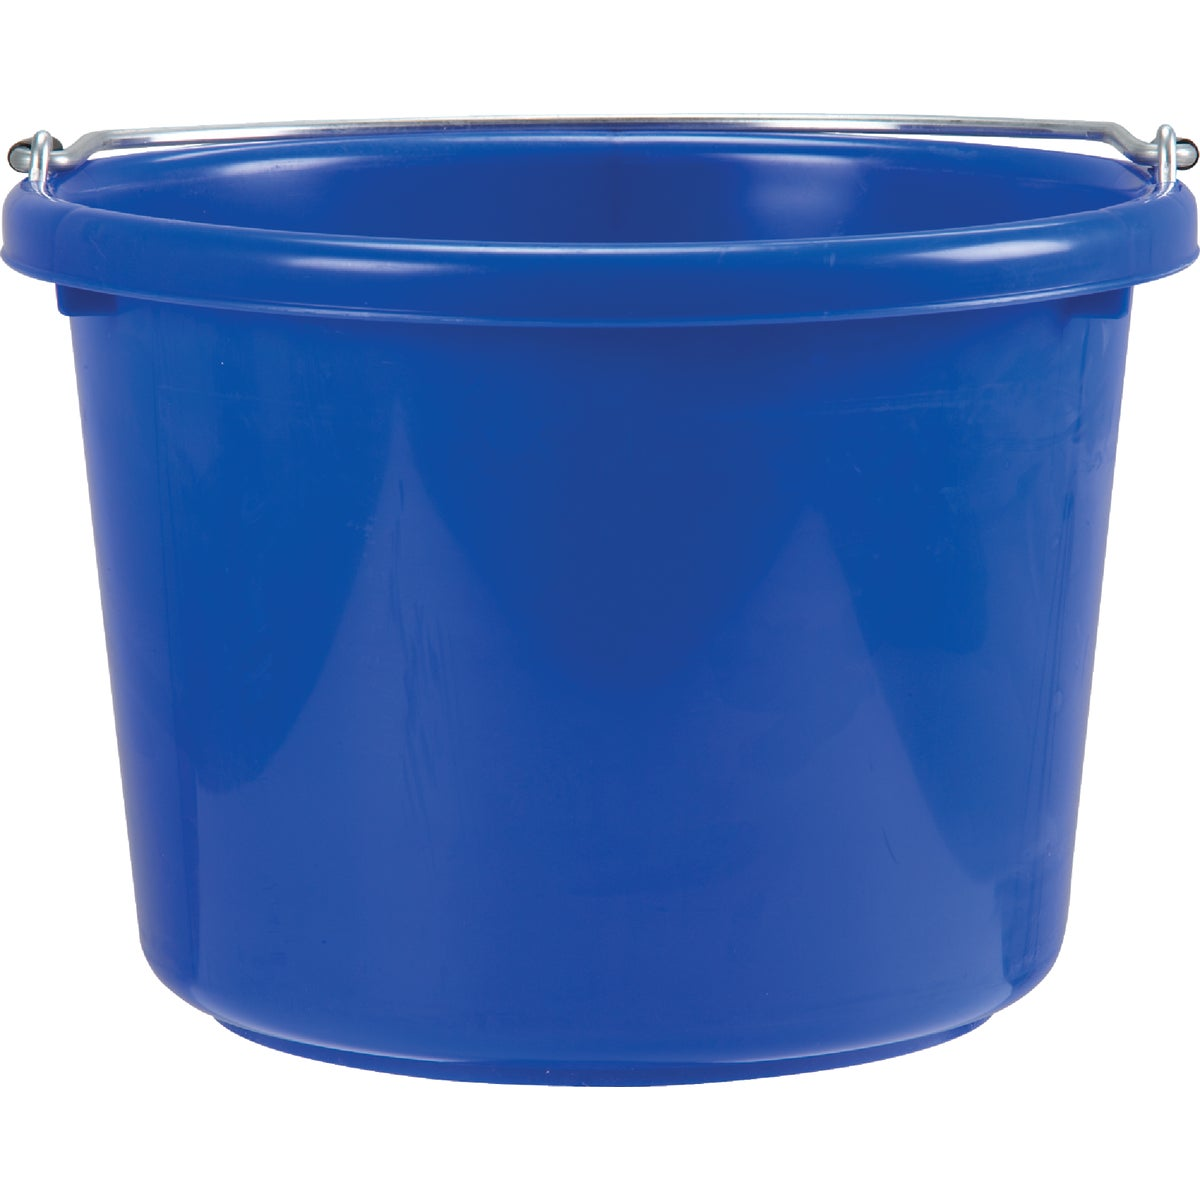 8QT BLUE POLY BUCKET - P8BLUE by Miller Manufacturing